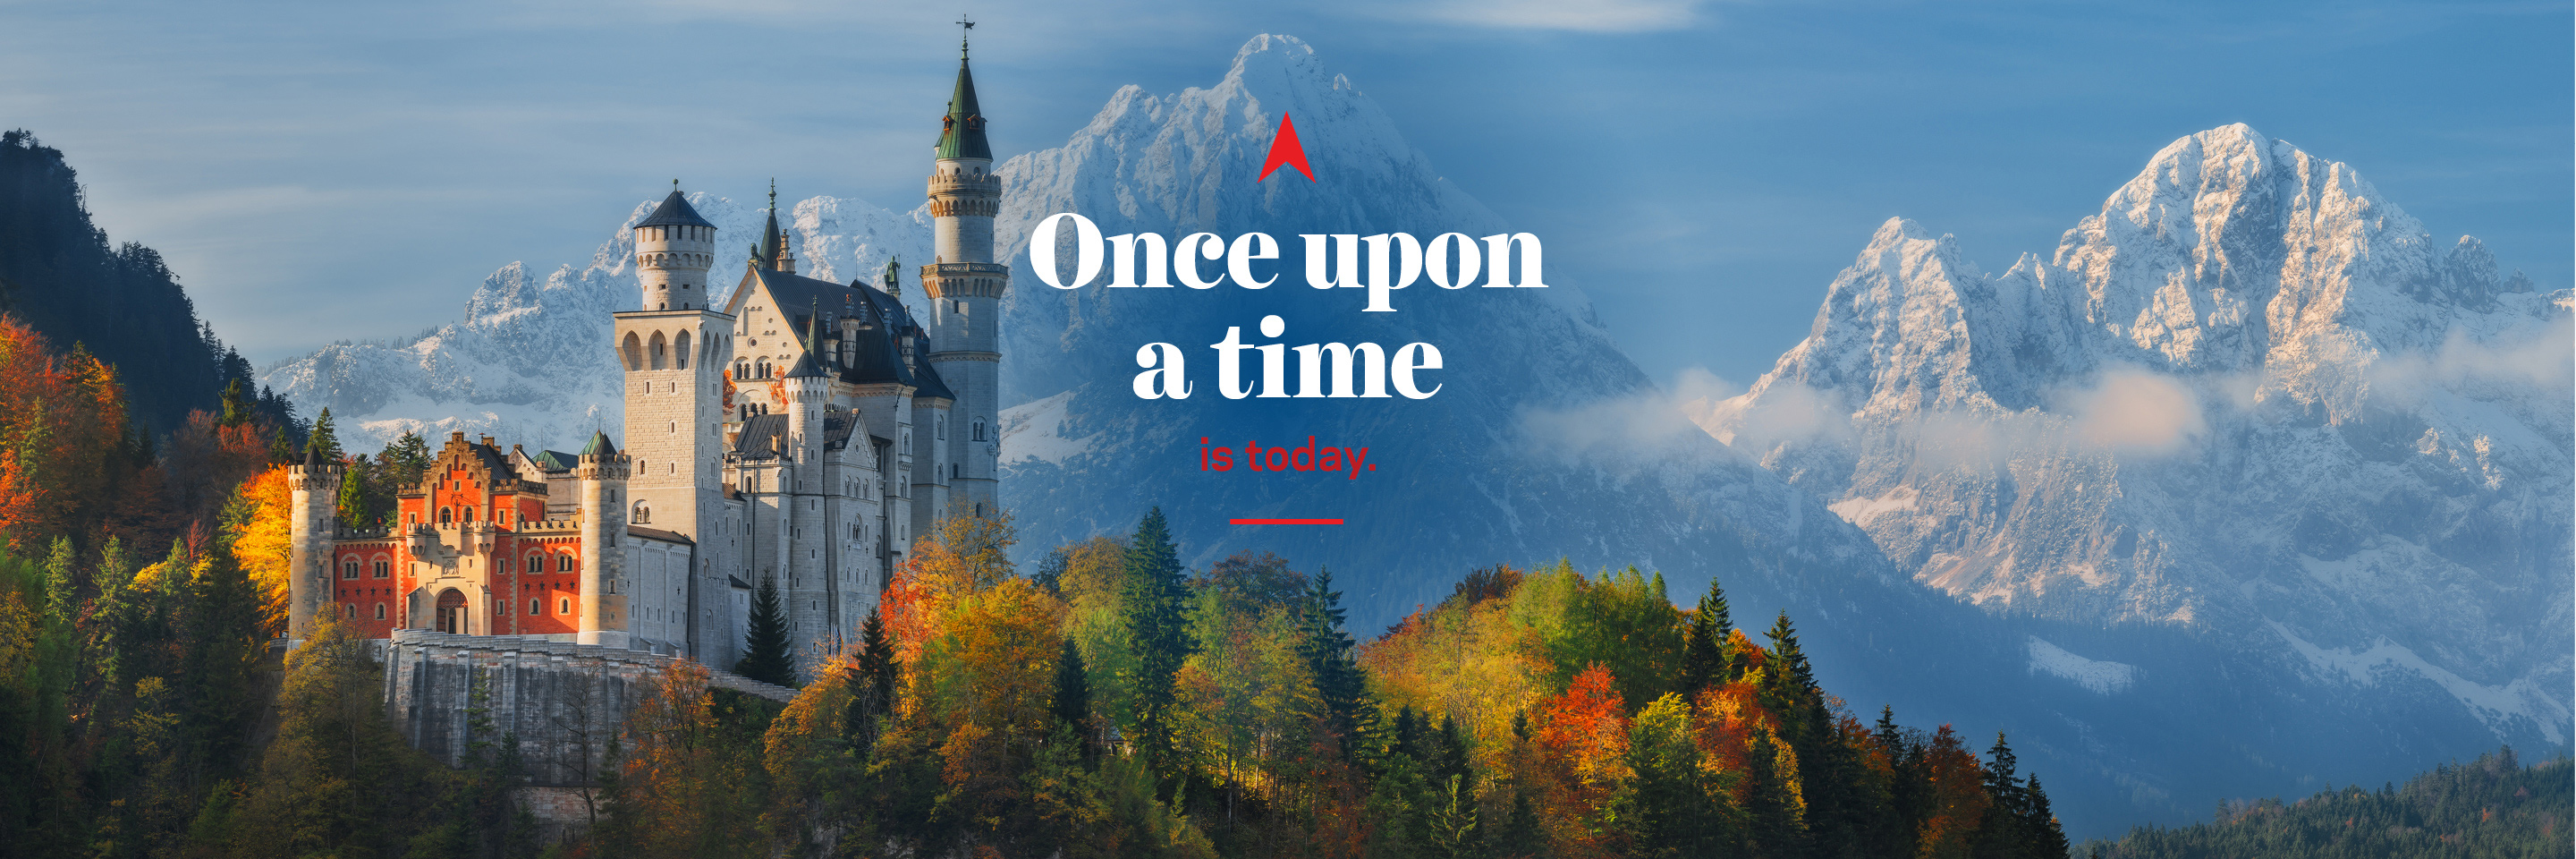 Once upon a time is today